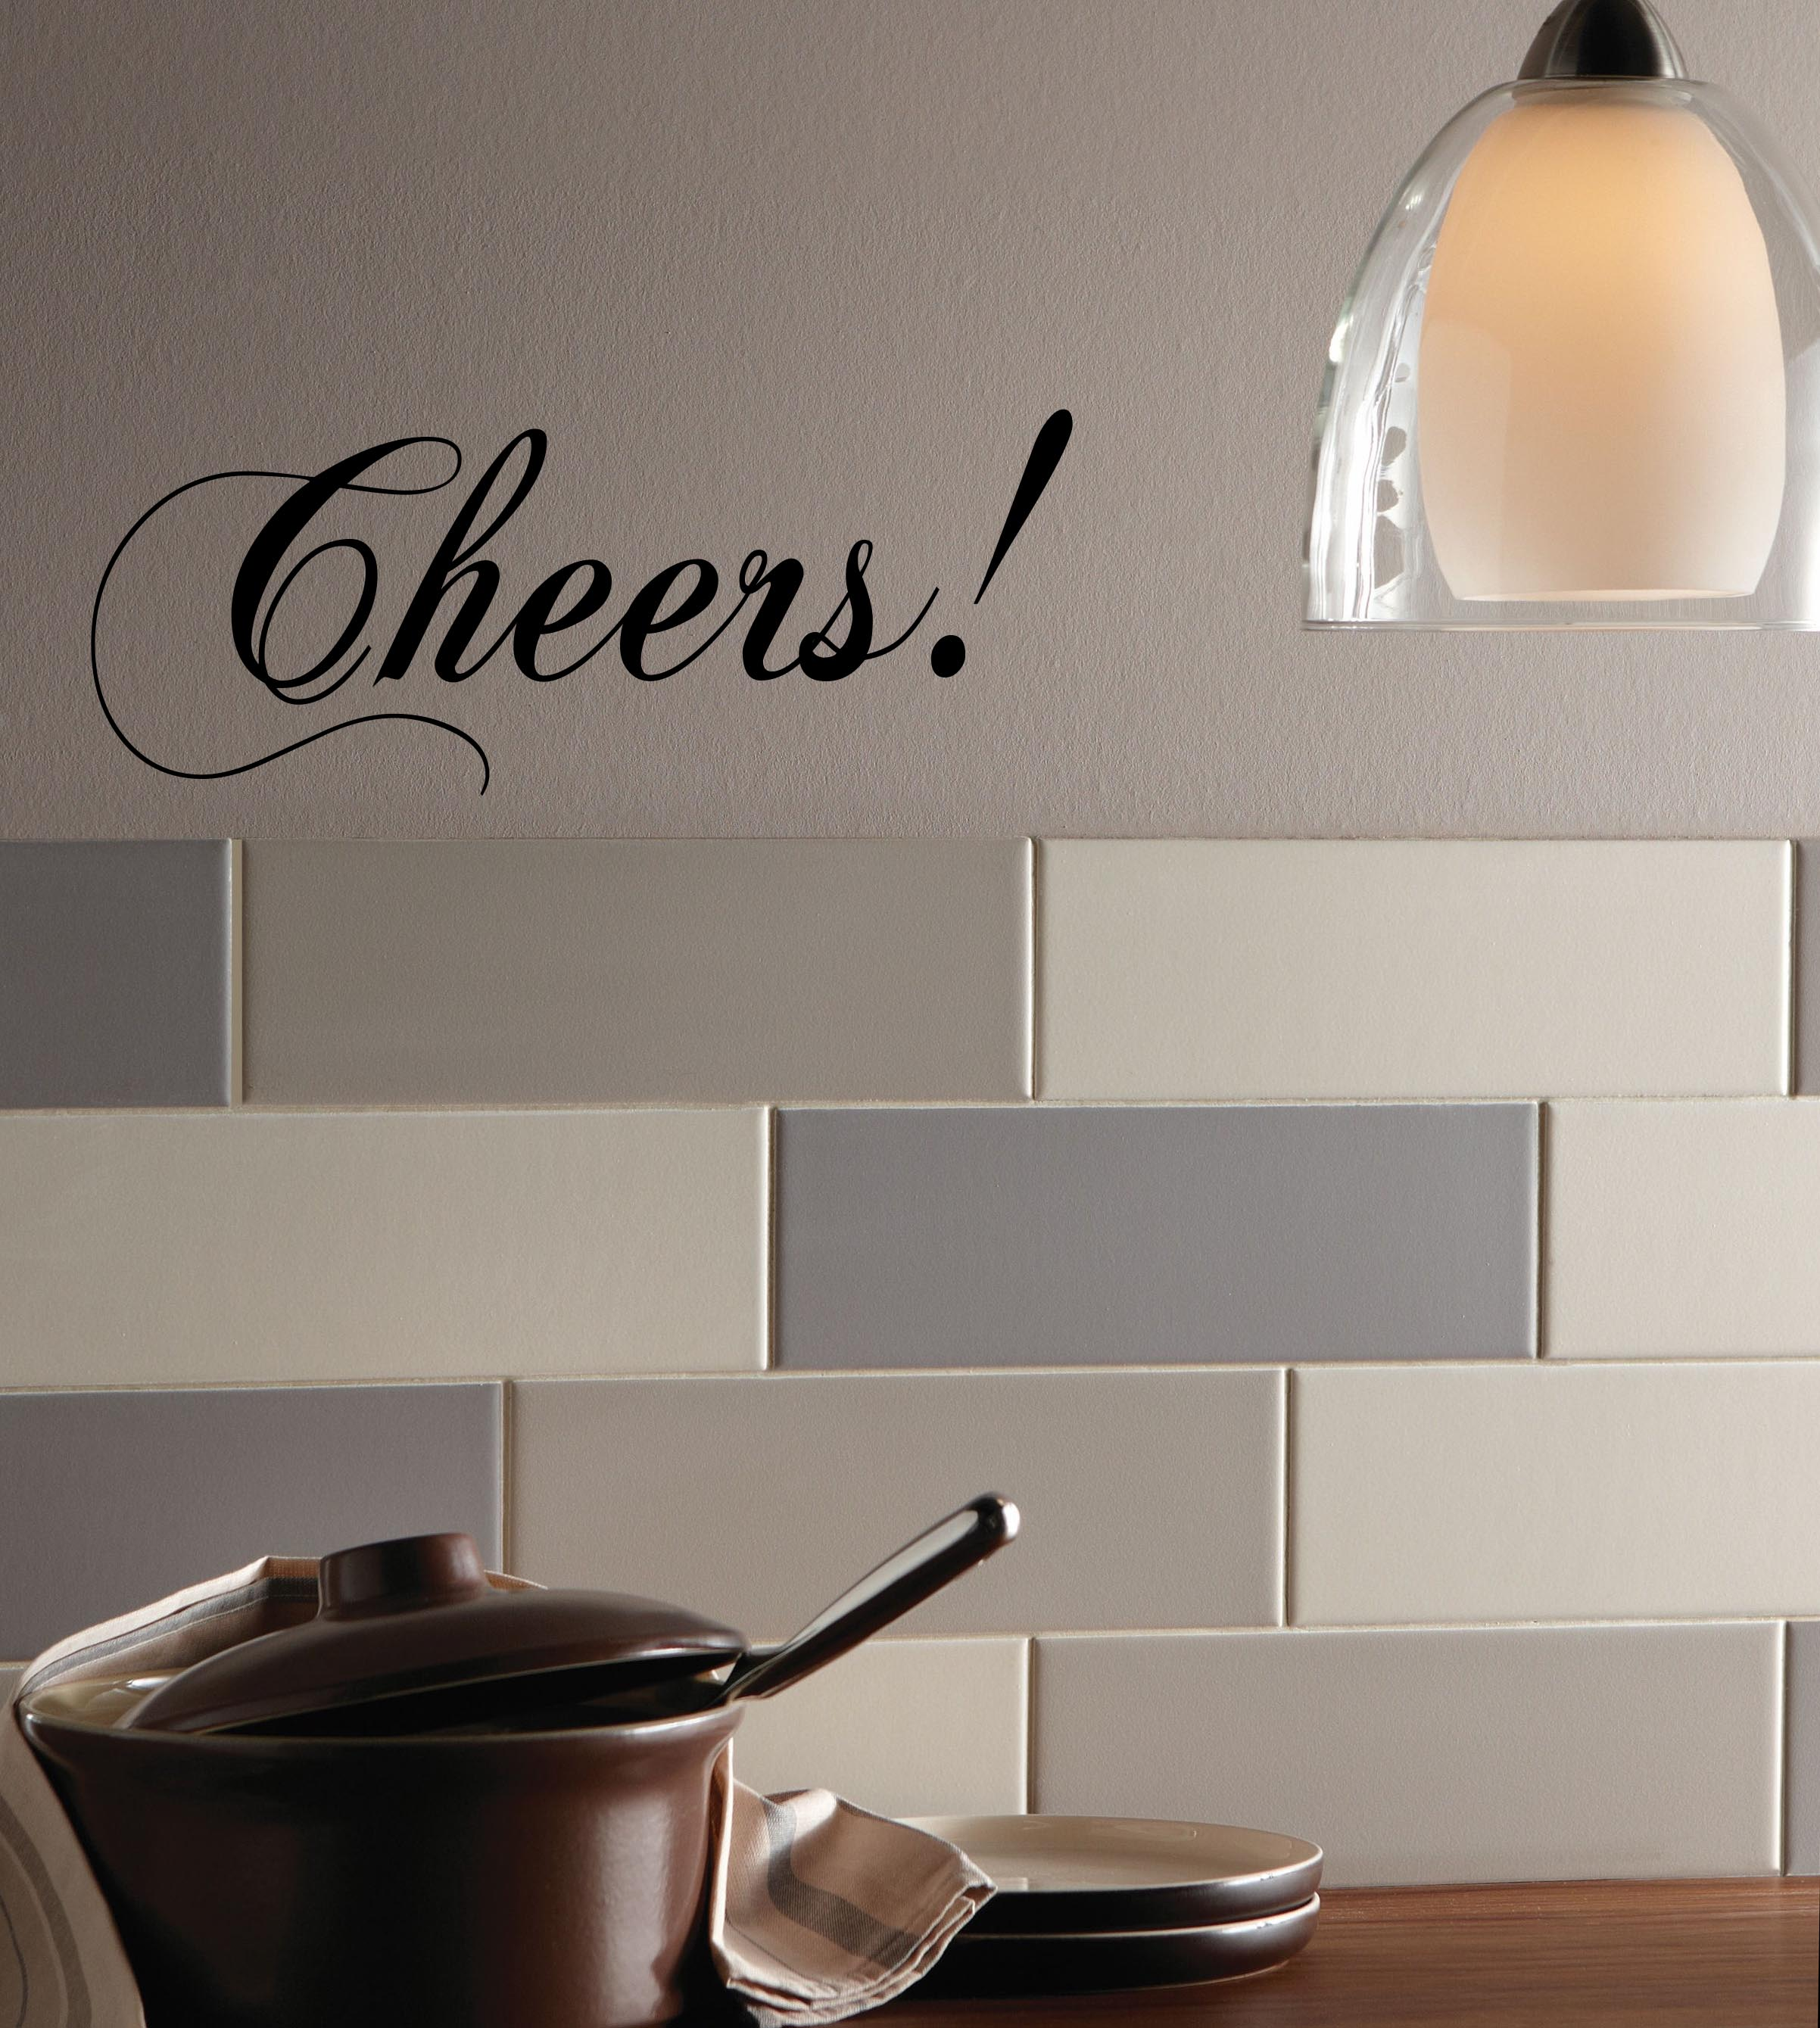 Cheers Wall Decal